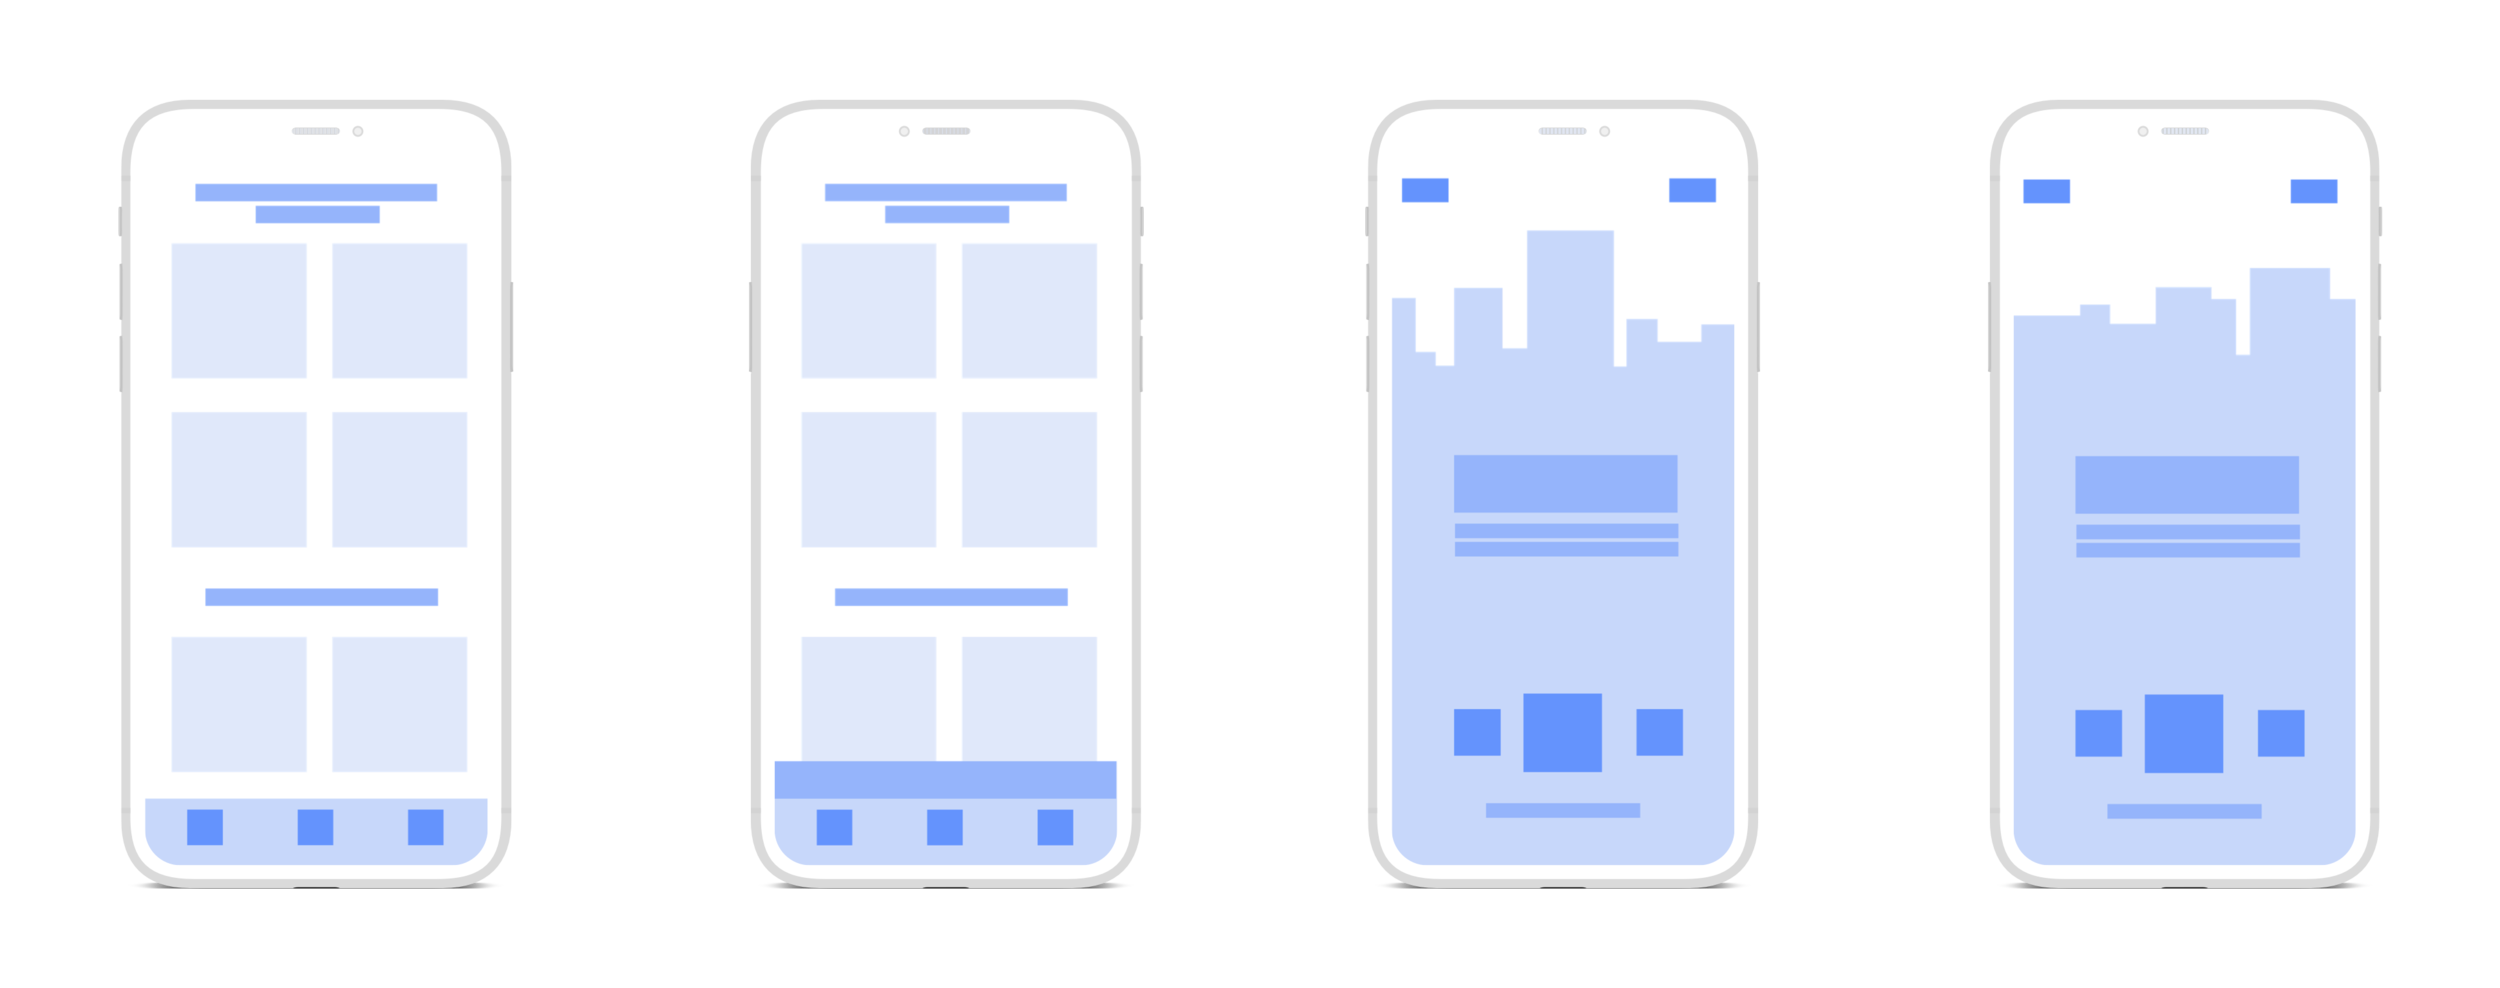 Listening Wireframes.png